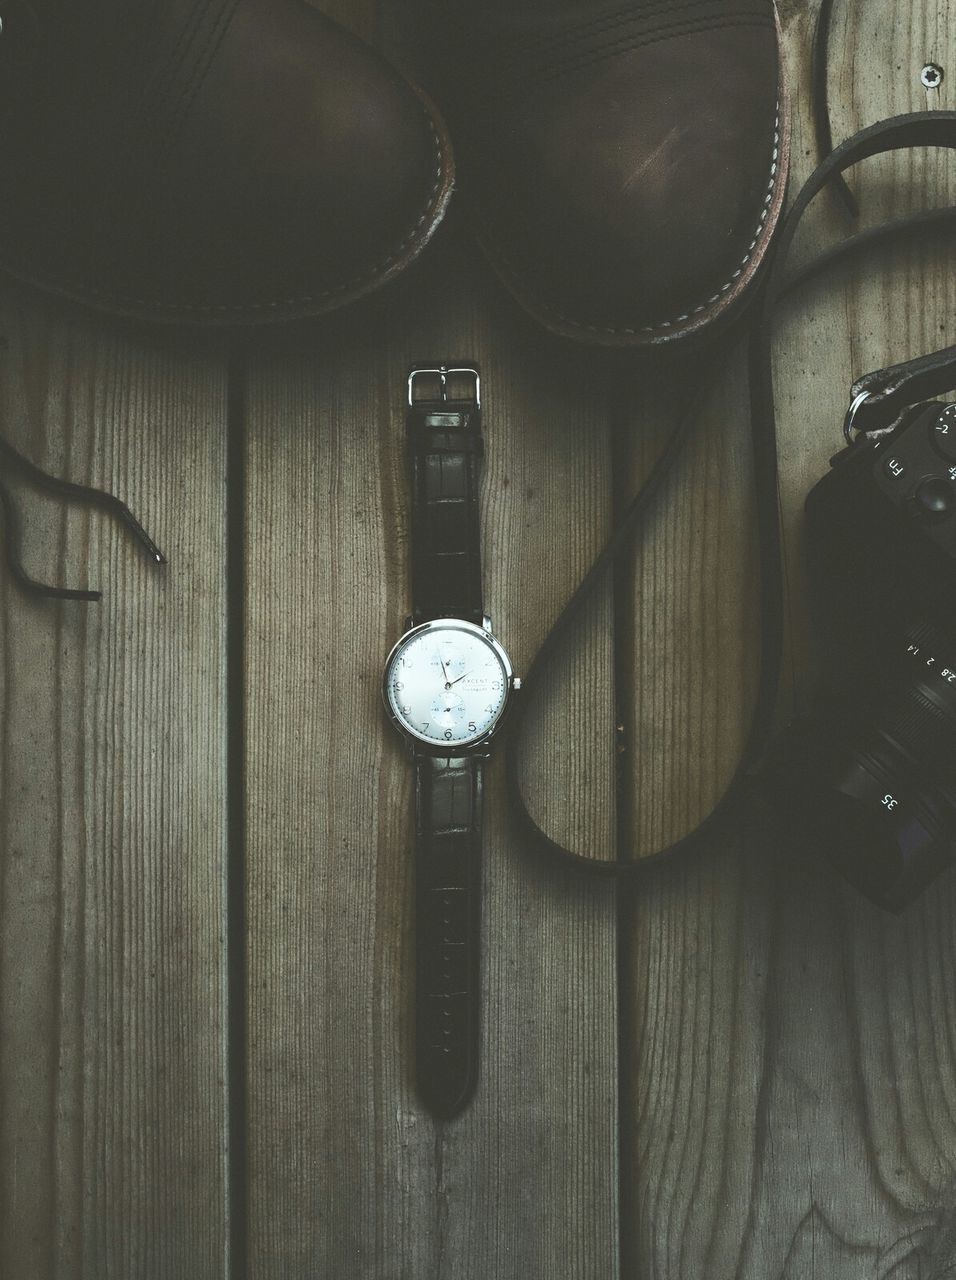 indoors, wood - material, no people, close-up, time, clock, day